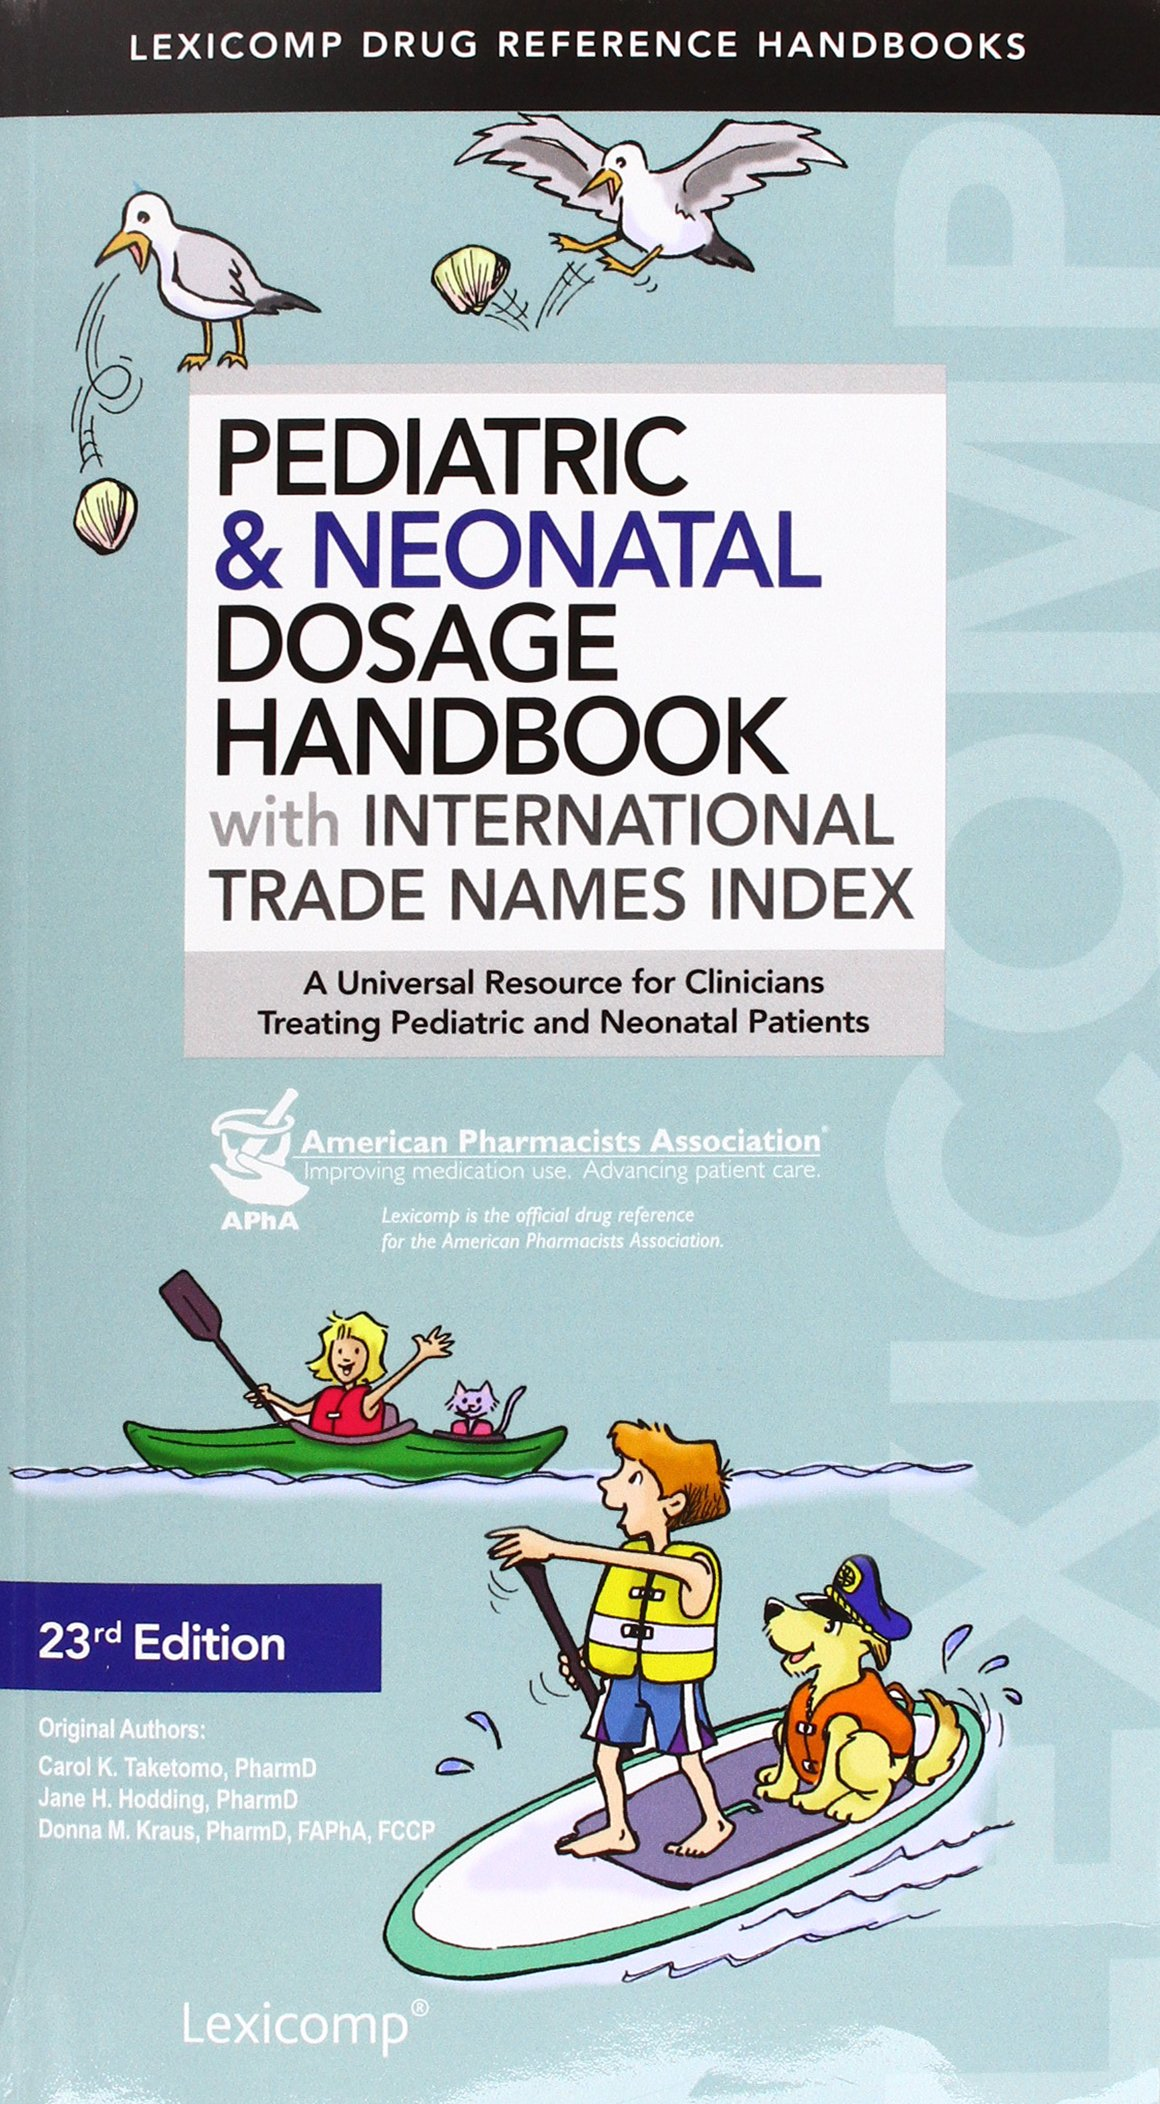 Pediatric & neonatal dosage handbook with international trade names index : a universal resource for clinicians treating pediatric and neonatal patients